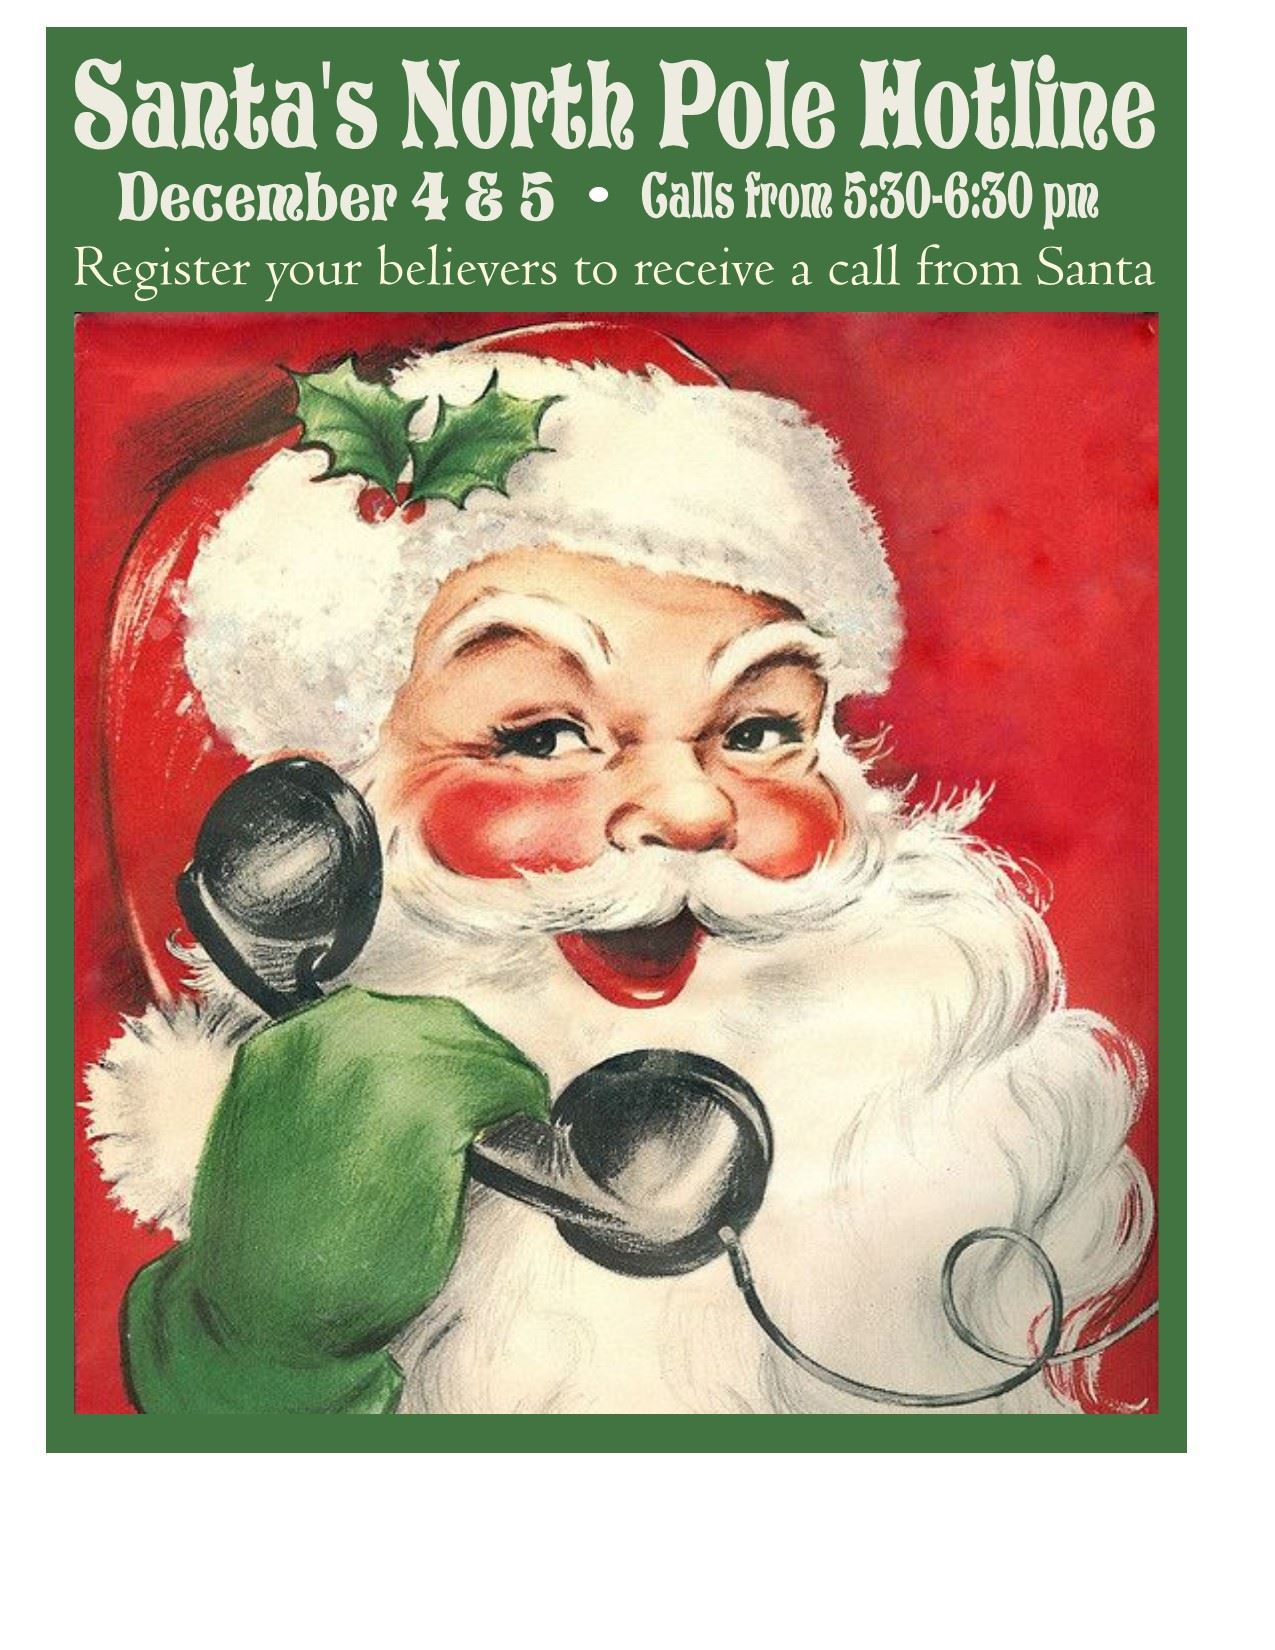 Santa's North Pole Hotline Deecember 4&5 Calls from 5:30-6:30 pm Register your believers to recei